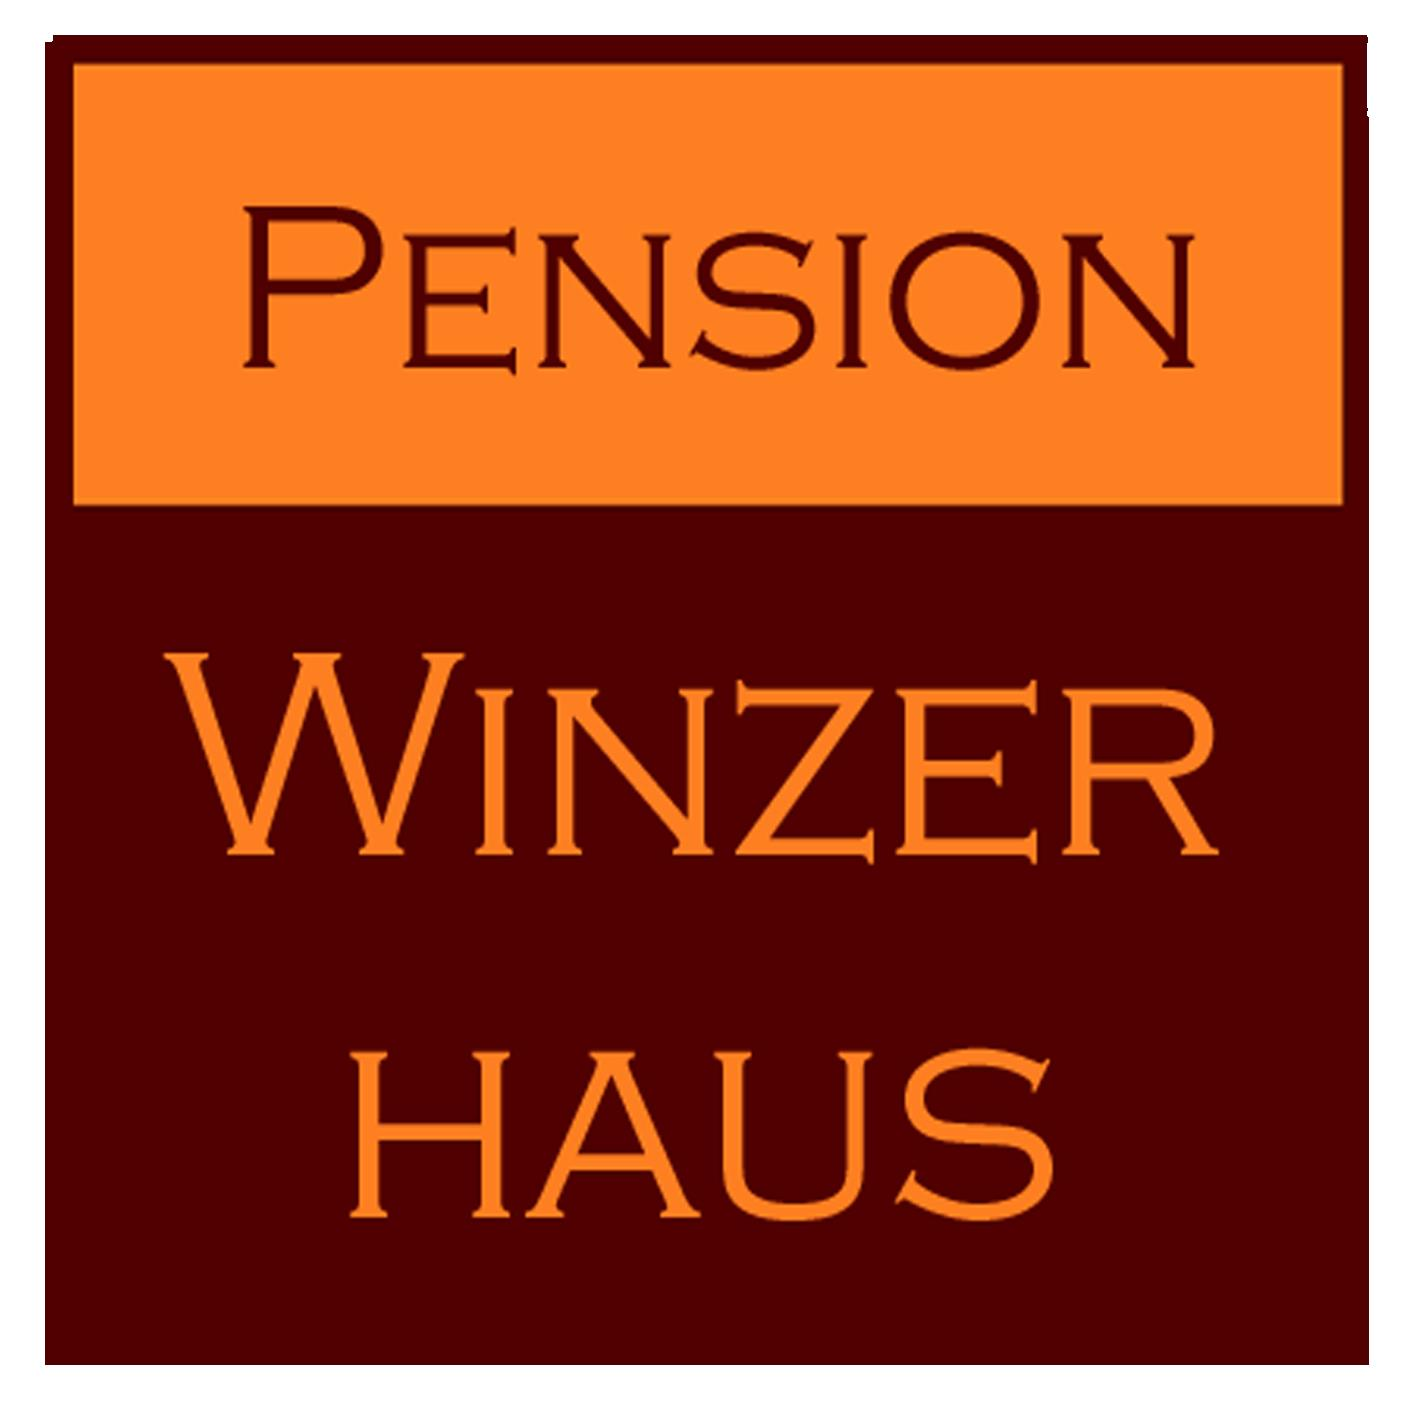 Pension-Winzerhaus